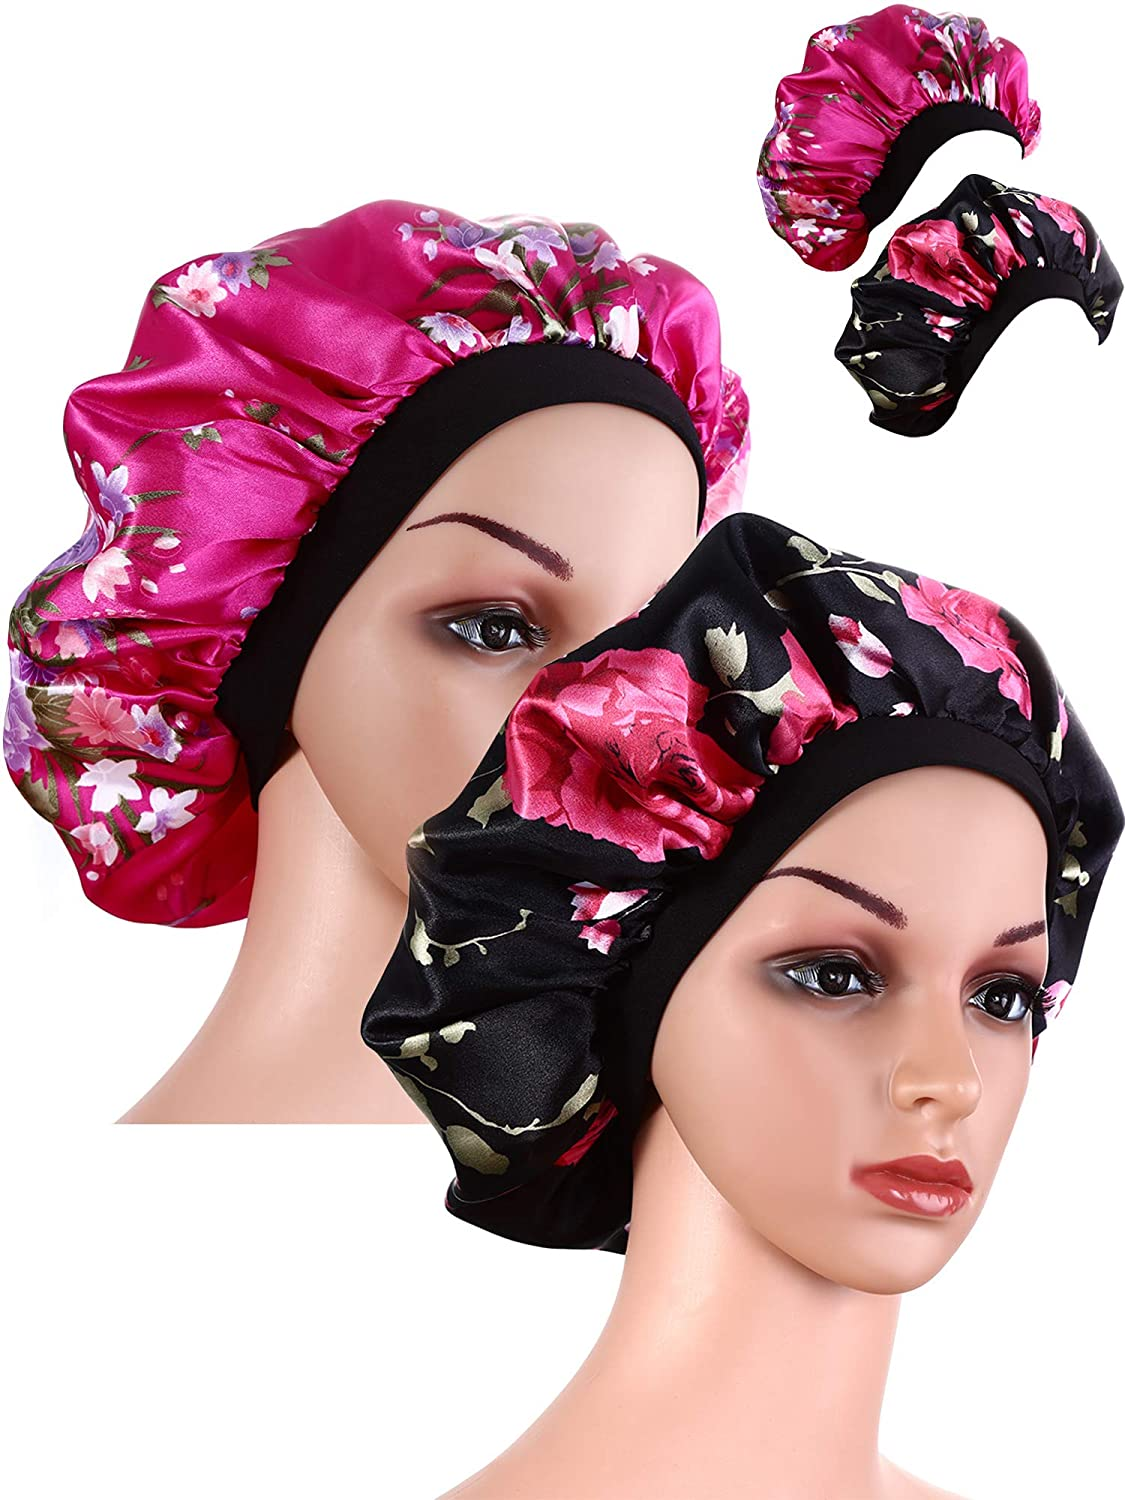 2 Pieces Wide Band Satin Cap Sleep Bonnet Soft Night Sleep Hat for Women and Girls